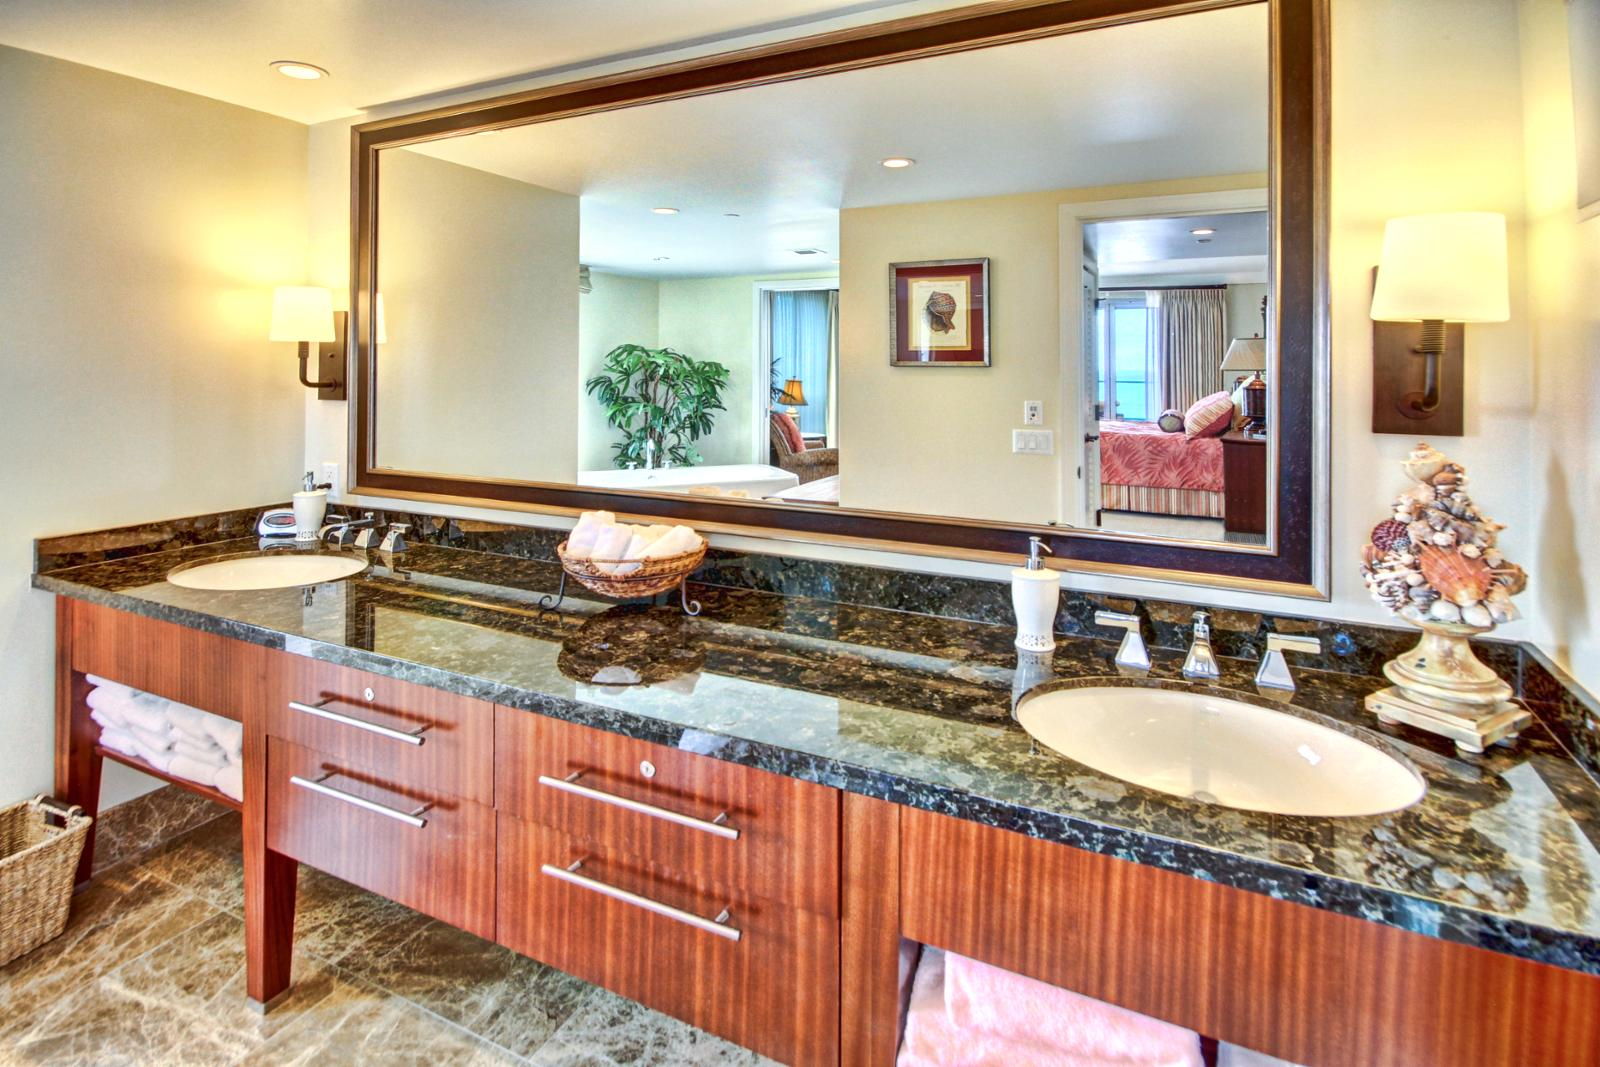 Plenty of counter space in these bathrooms.